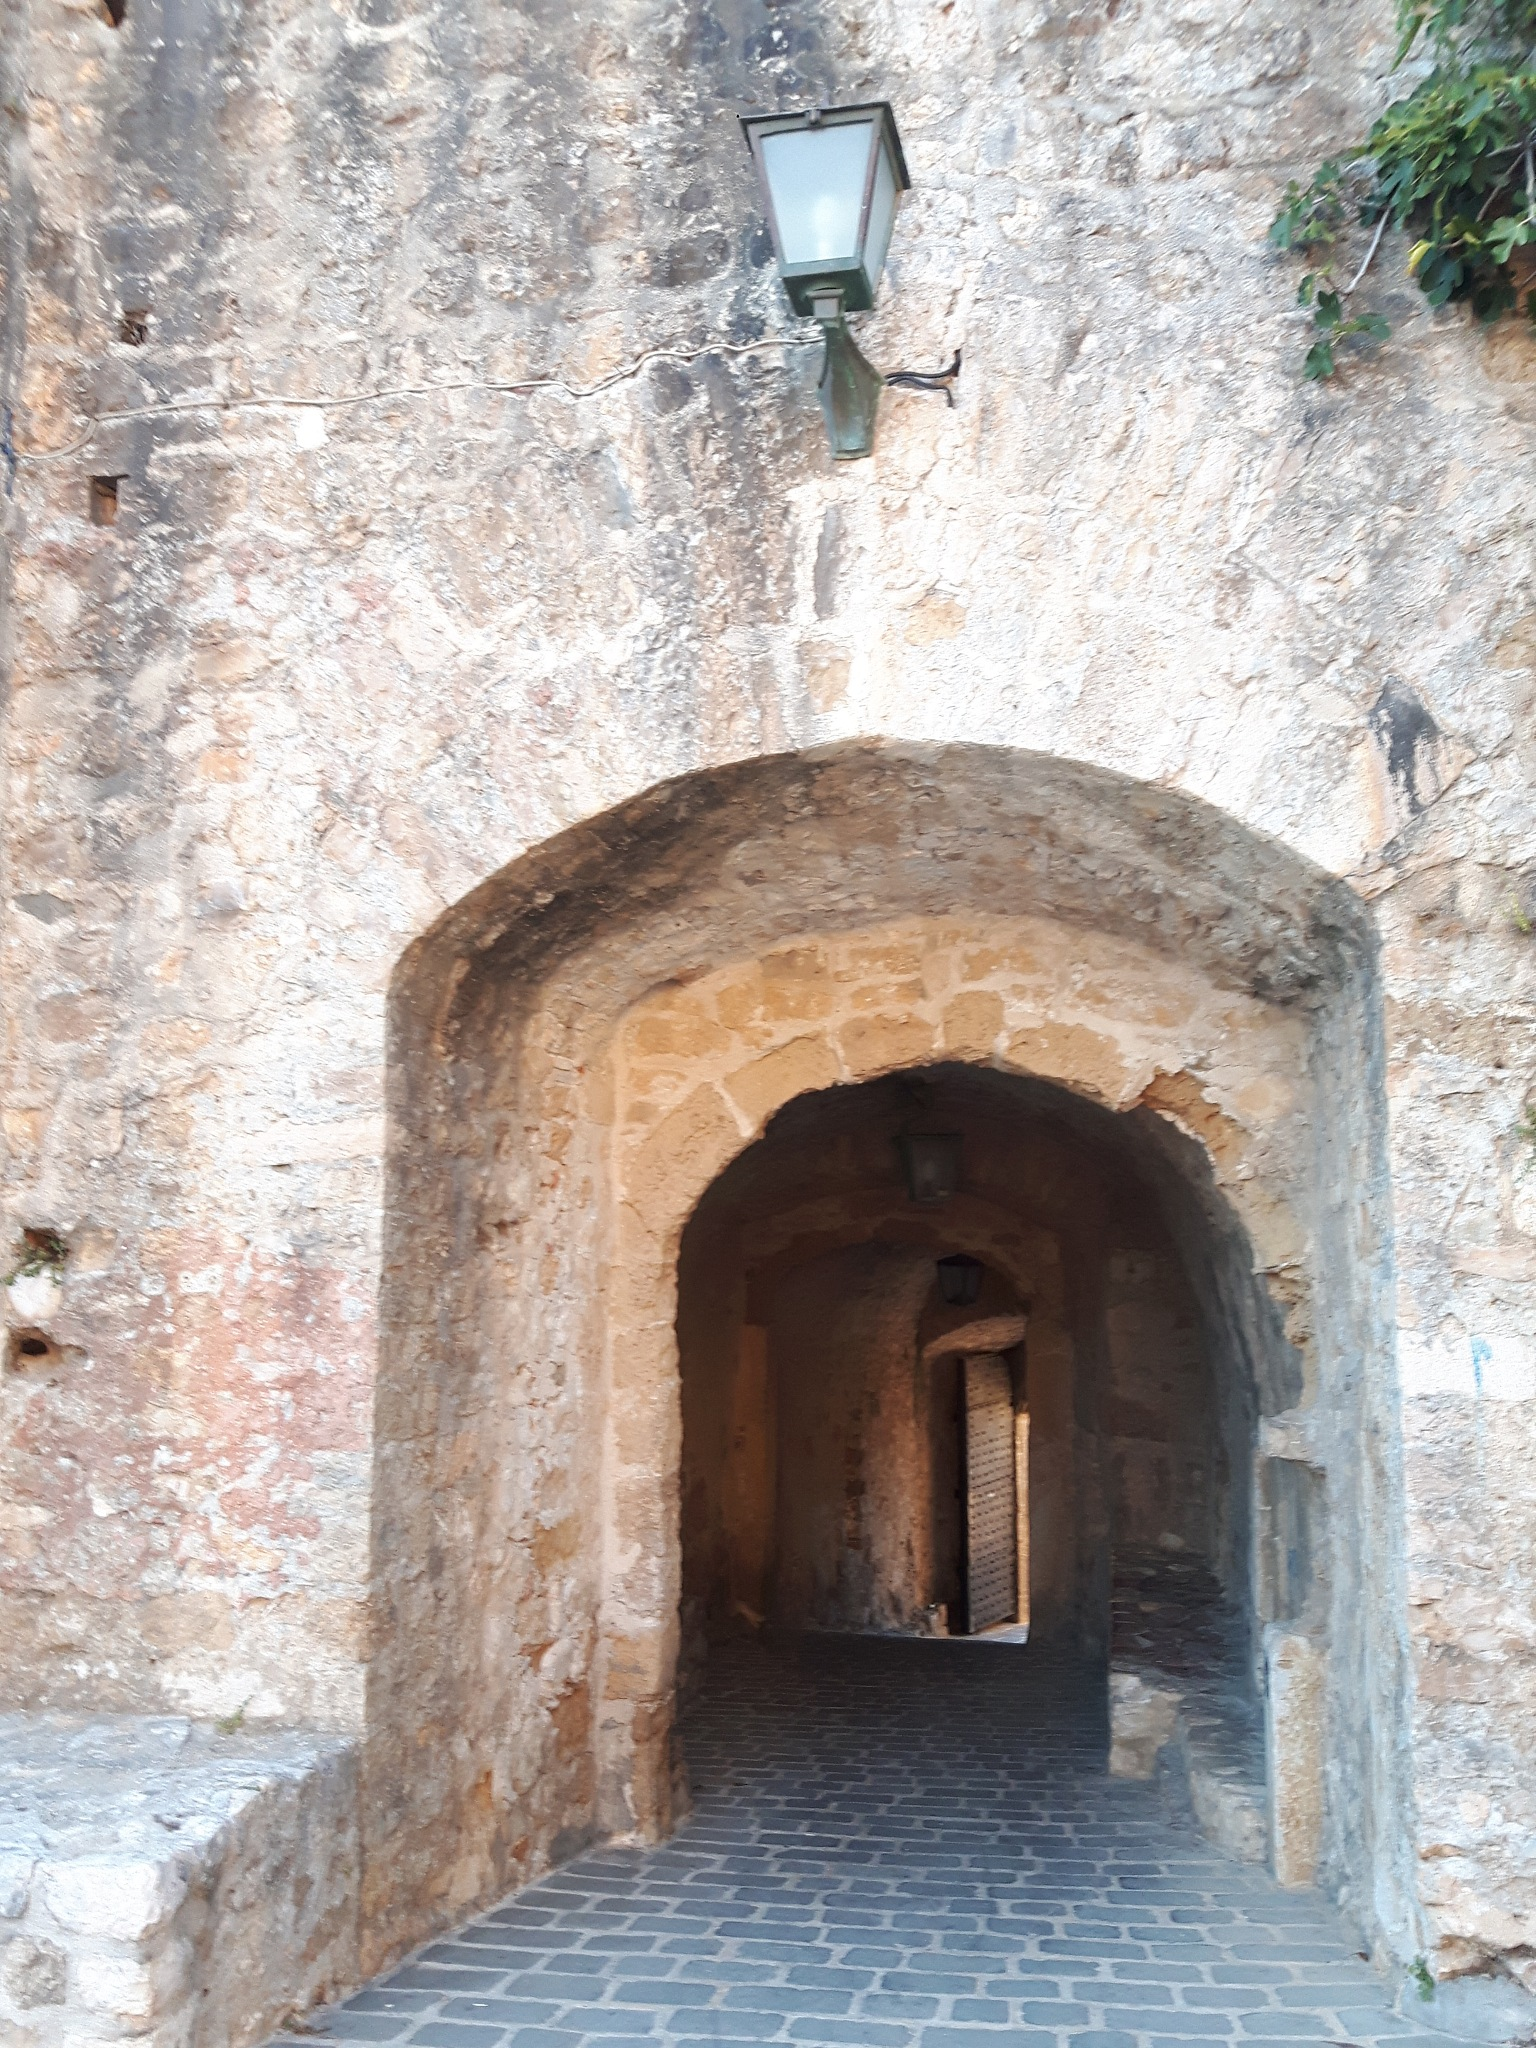 A stone gate enterance/exit in/out of Old town of Ulcinj by Mevludin_Hasanovic